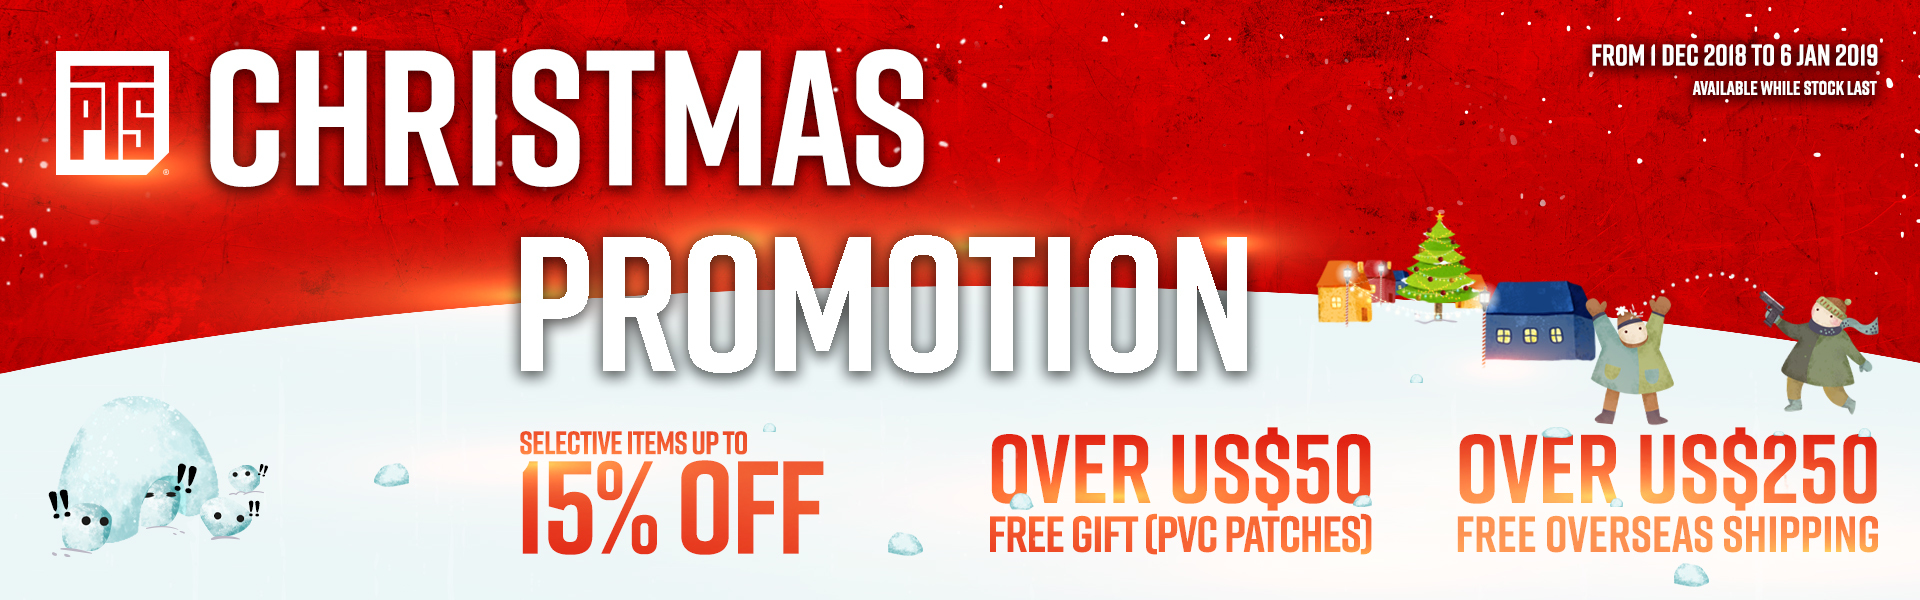 Christmas on sale promotion